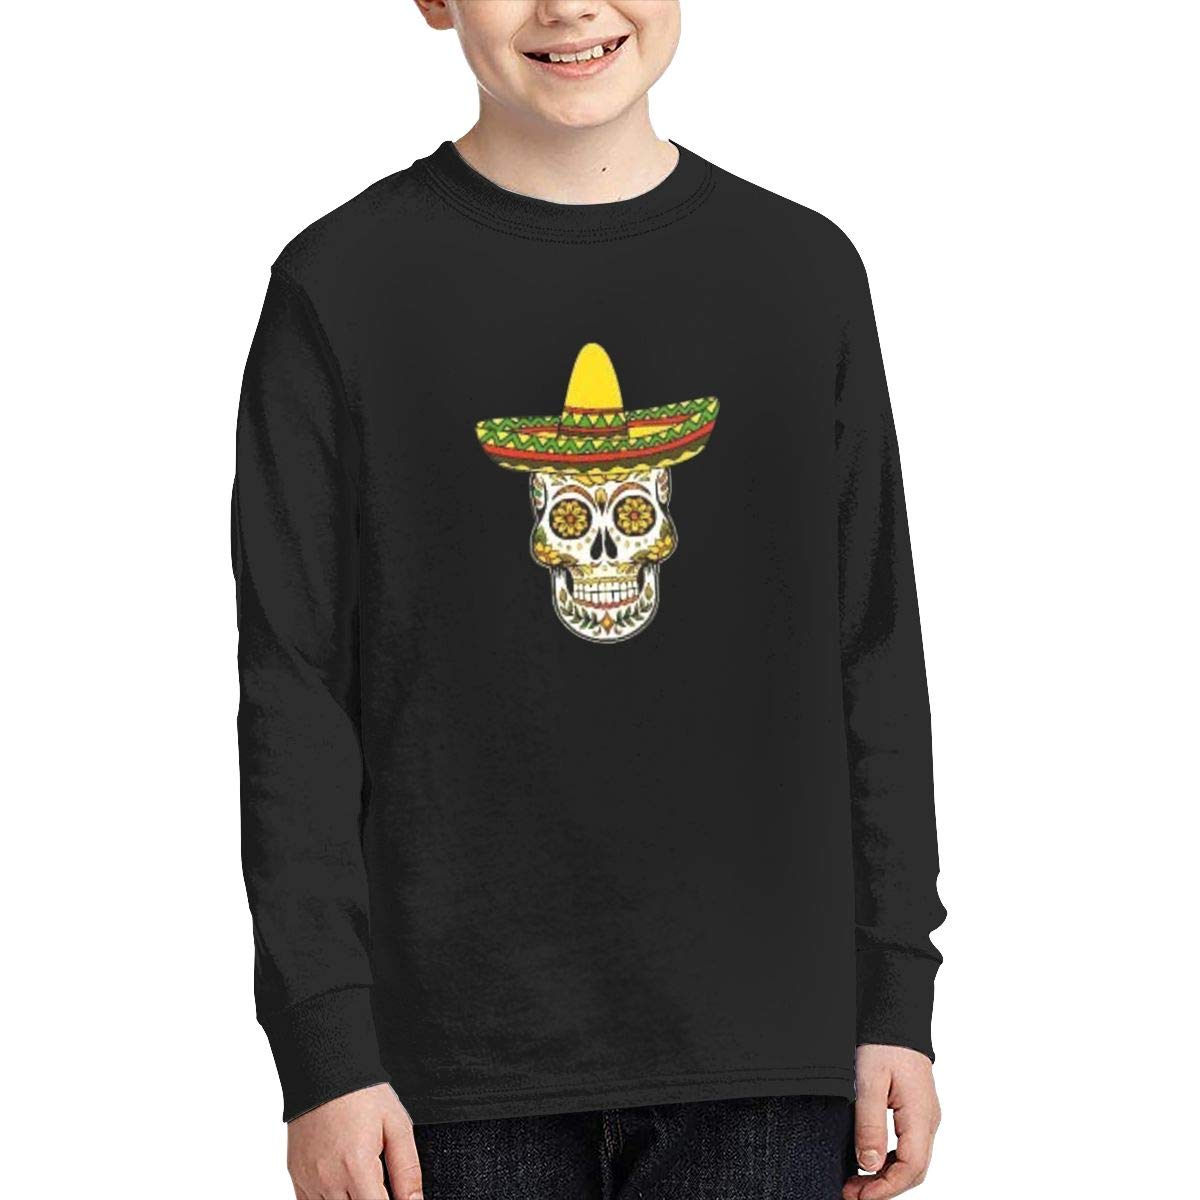 Mexican Sugar Skull Sombrero Youth Long Sleeve Moisture Wicking Athletic T Shirts Casual Tee Graphic Tops for Teen Boys Girls